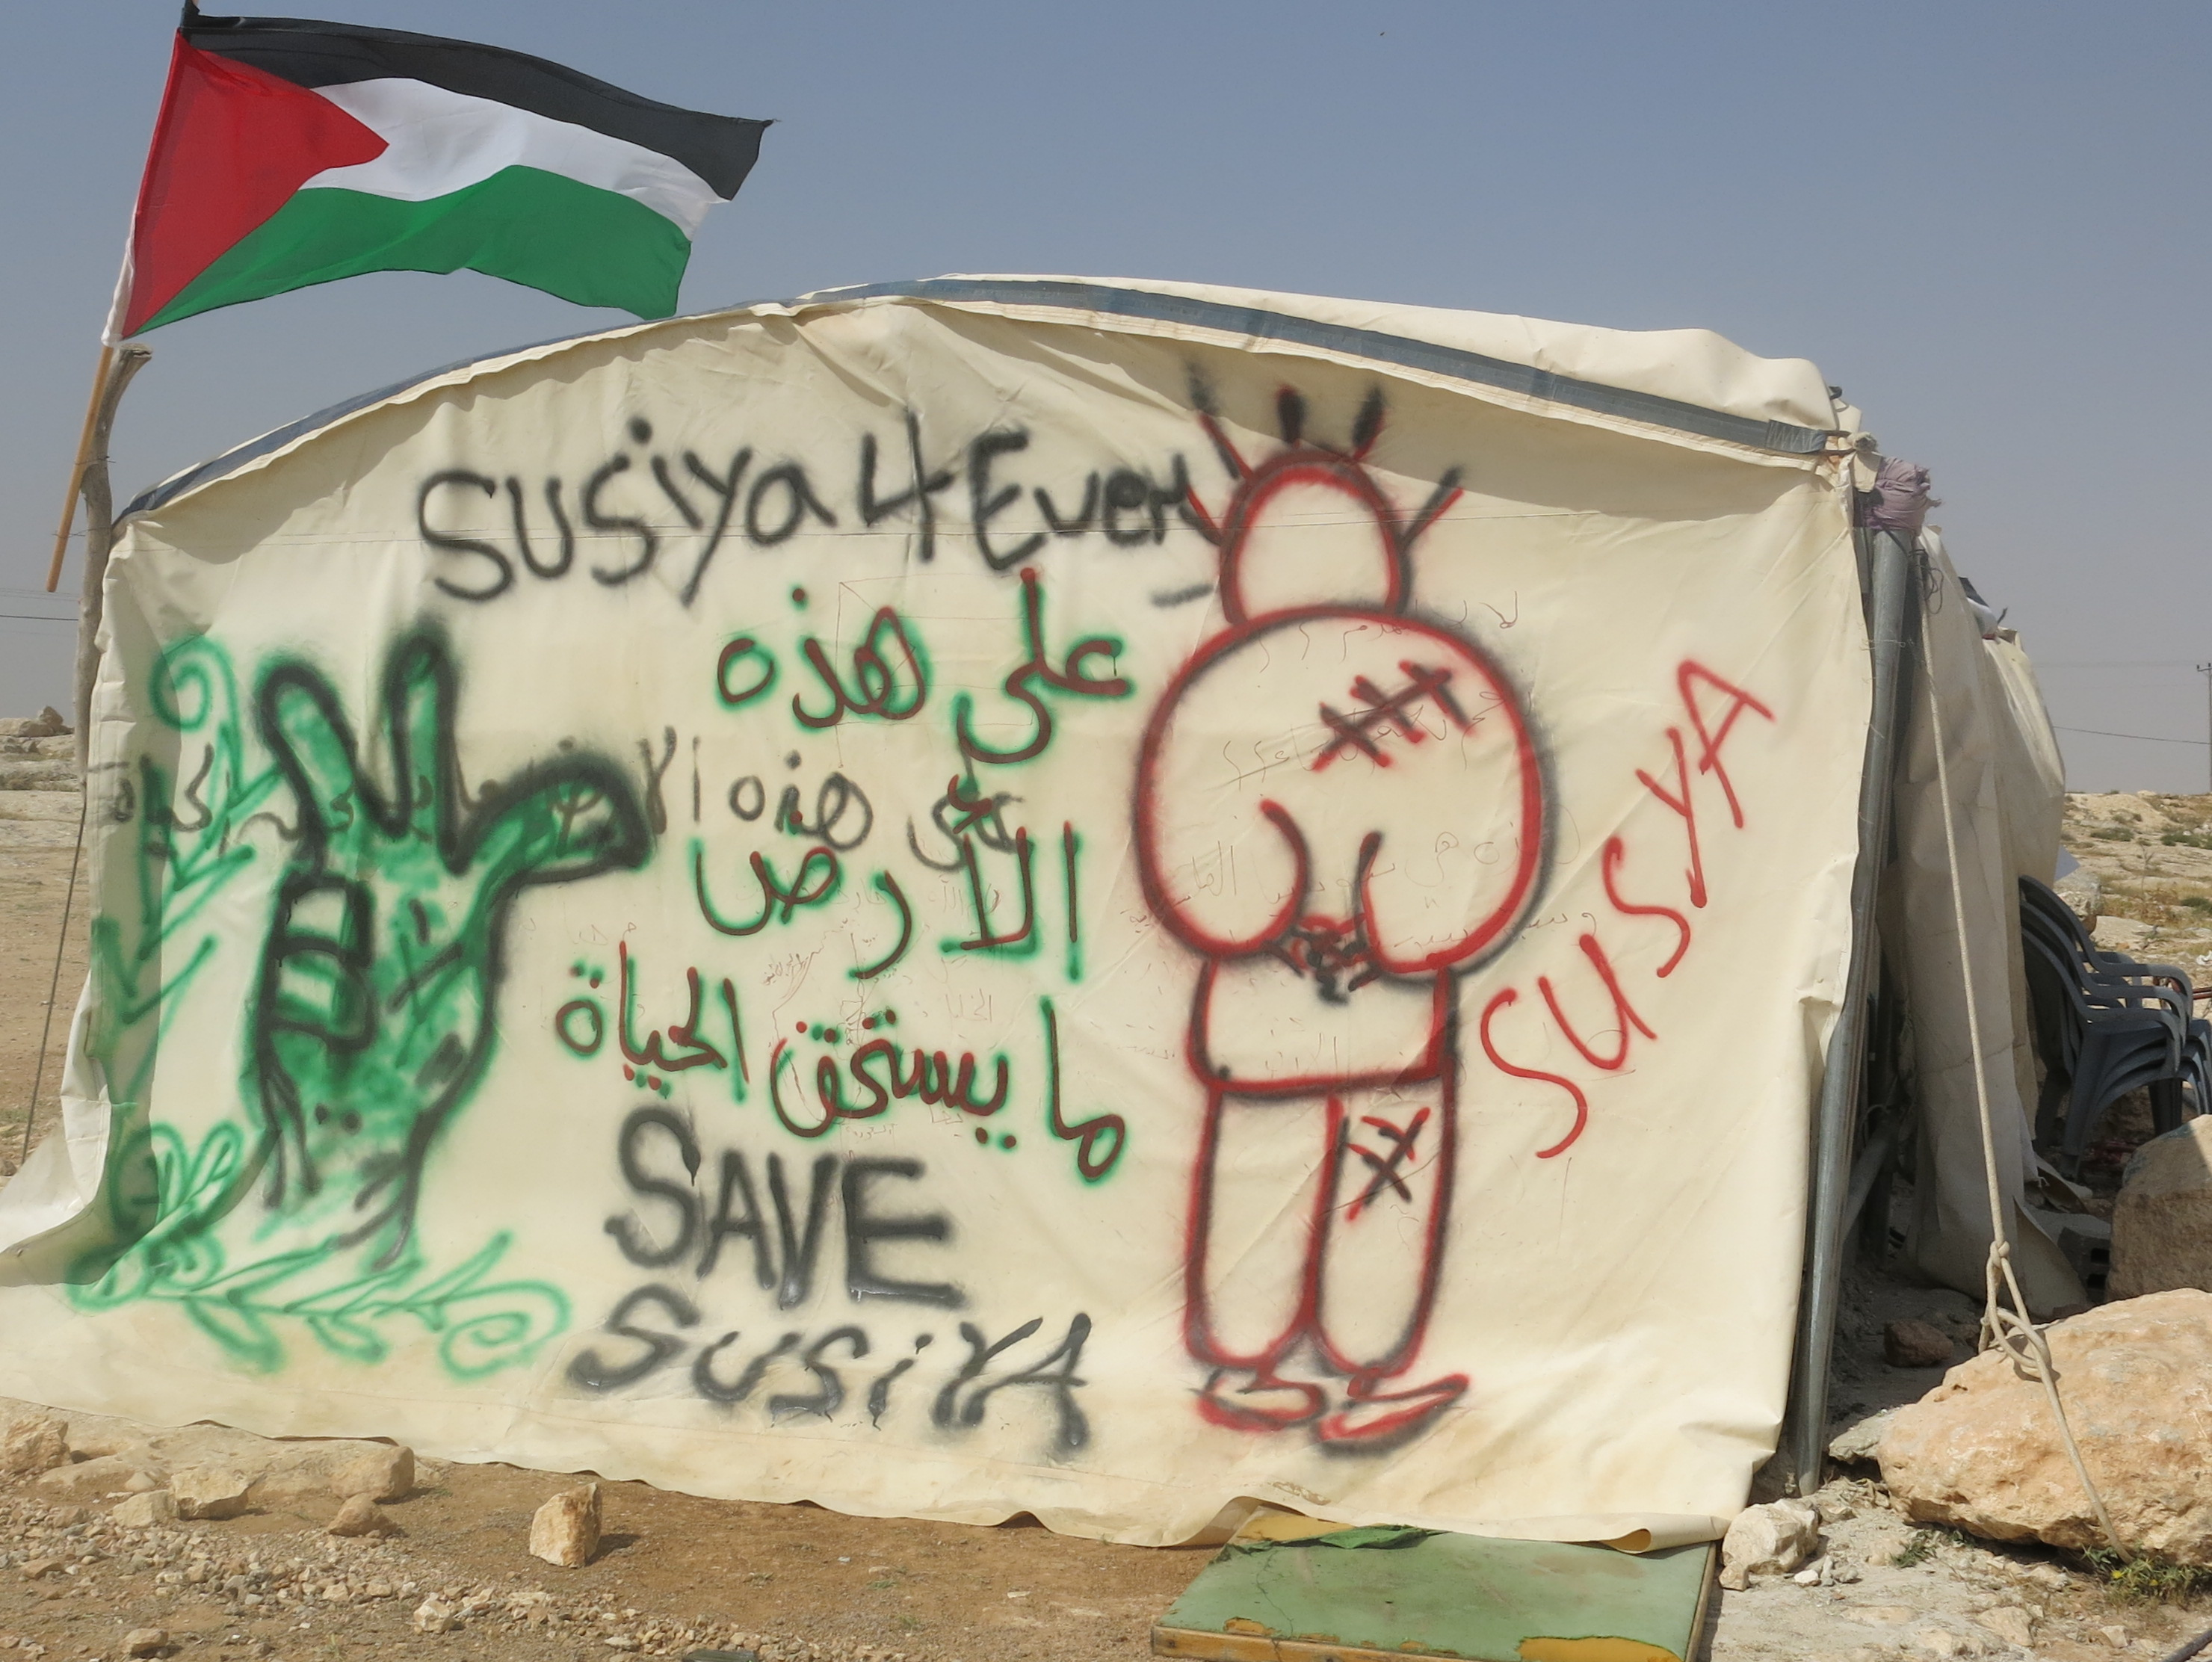 A home in the Palestinian village of Susiya which is expected to be demolished in the coming days